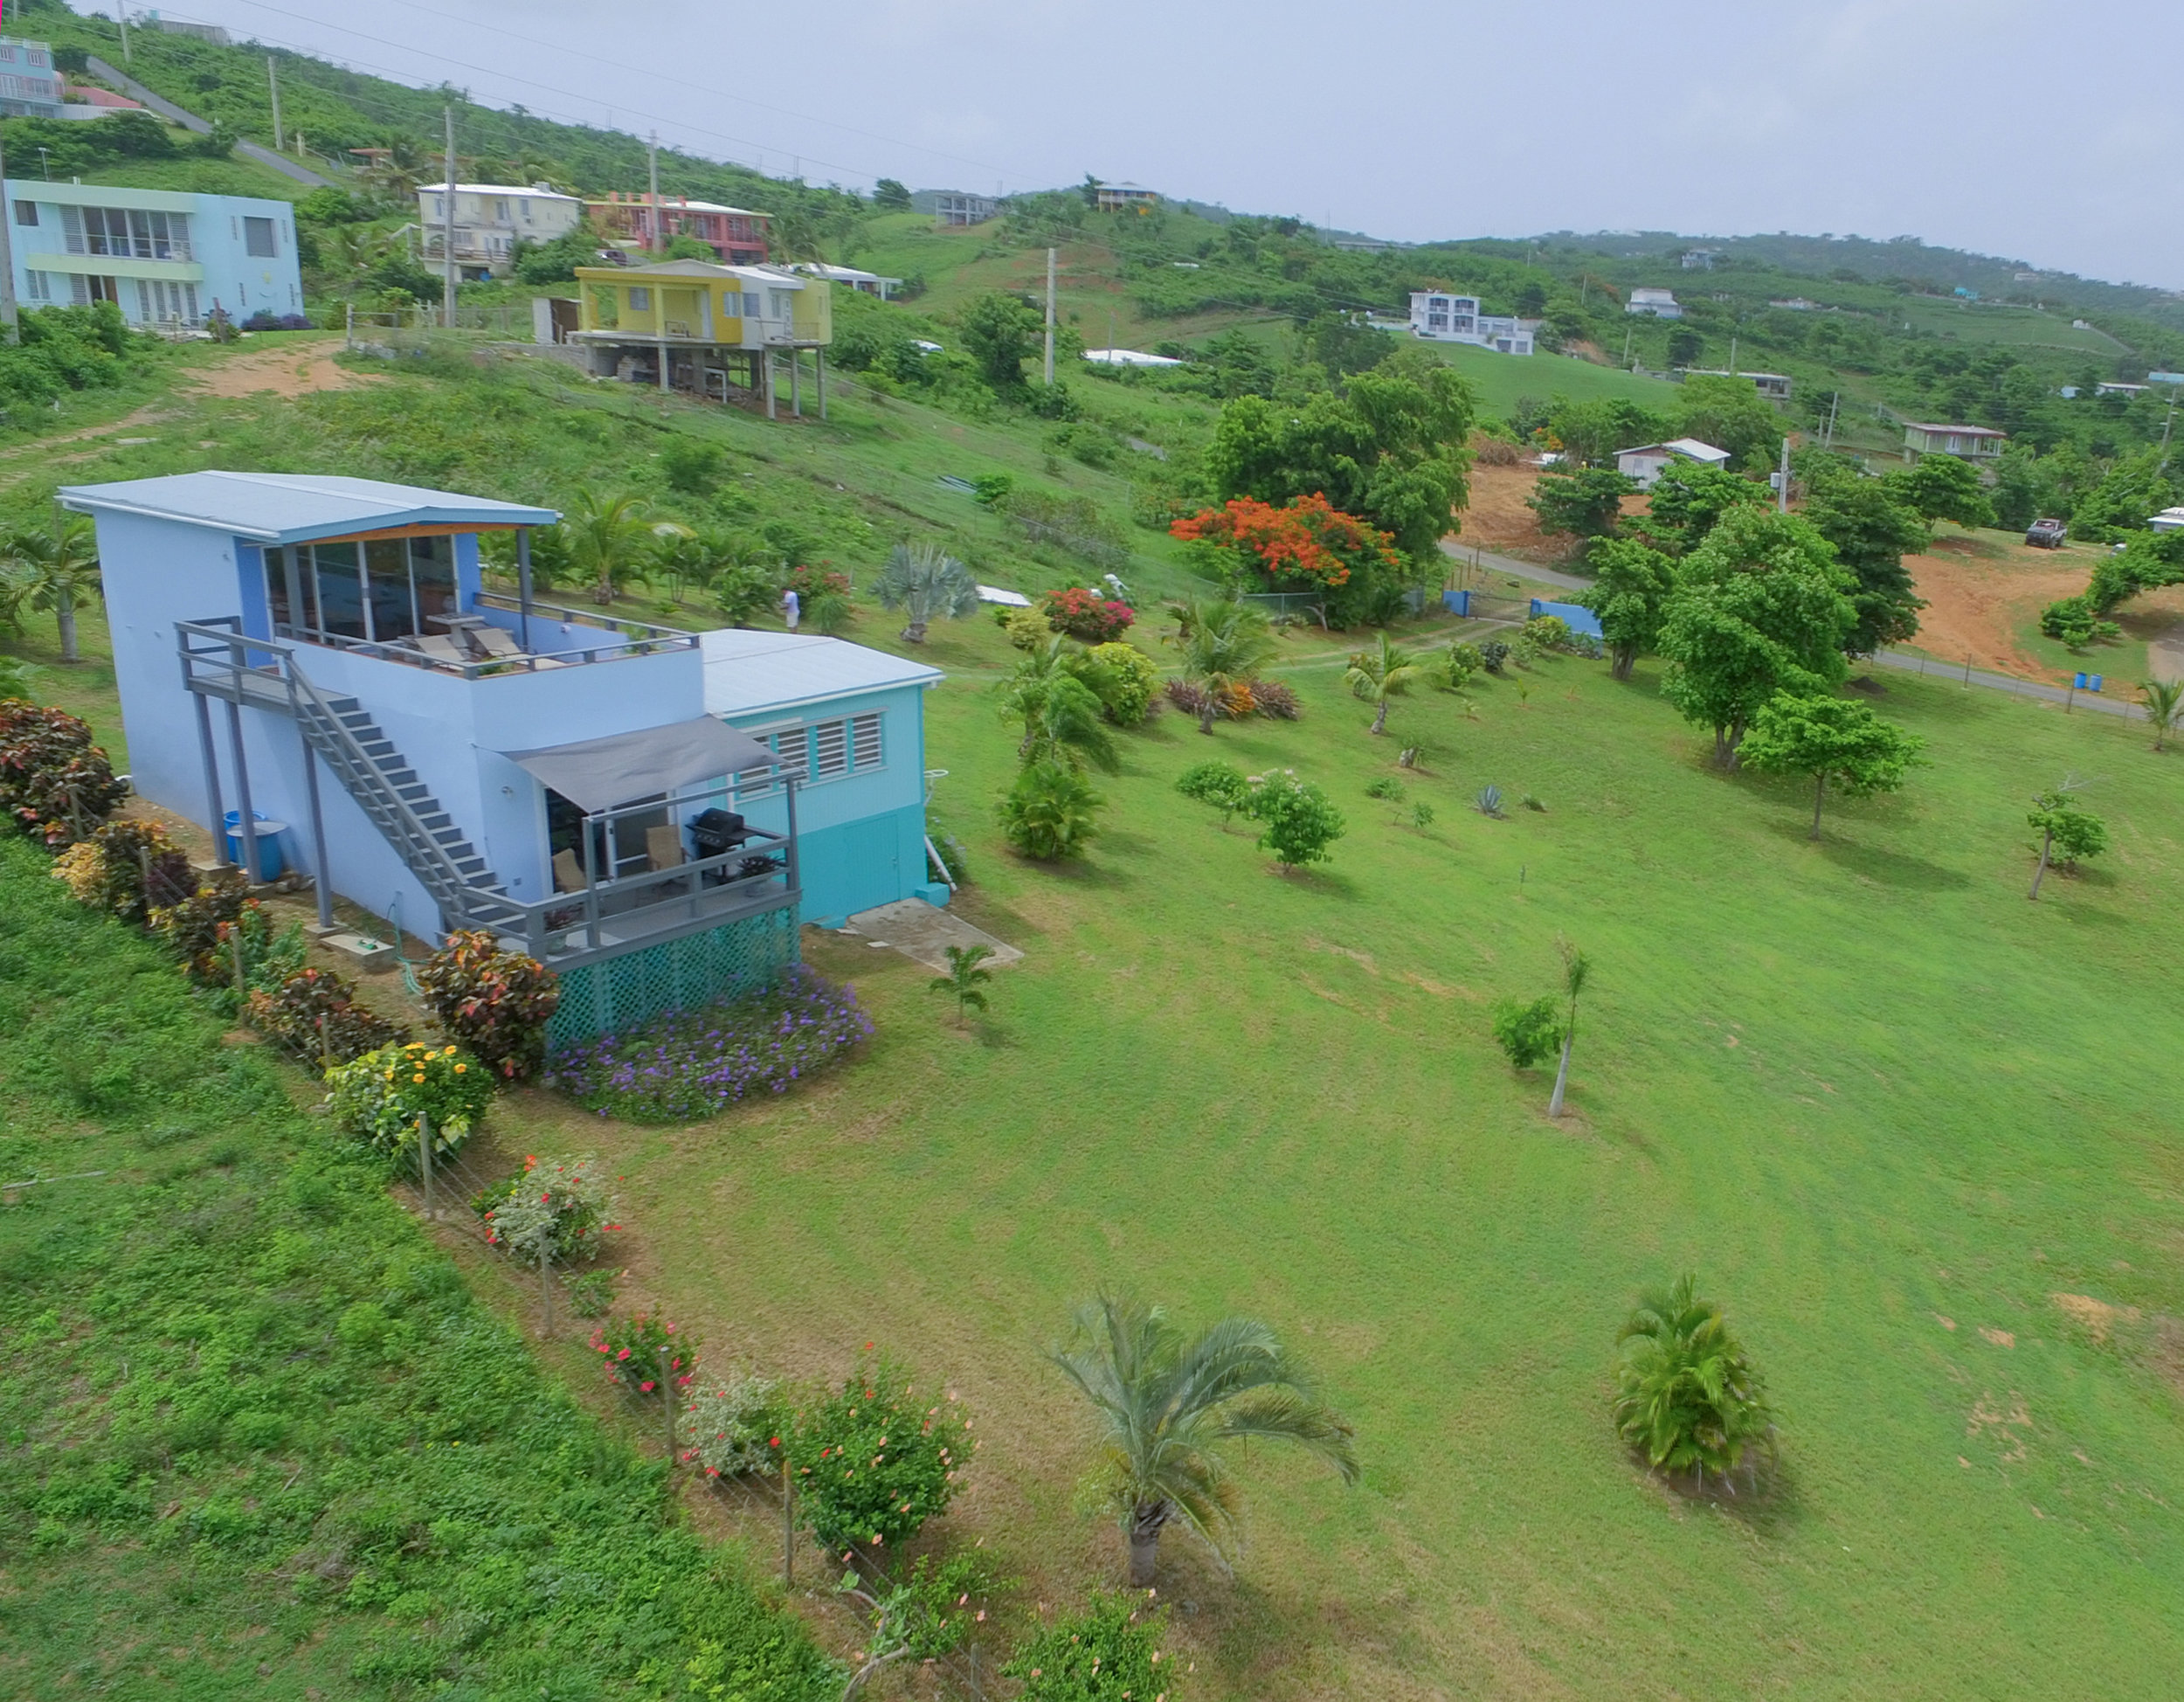 Colores Del Mar, $395,000, 2 Bed, 2 Bath  Bastimento Heights, Vieques, PR